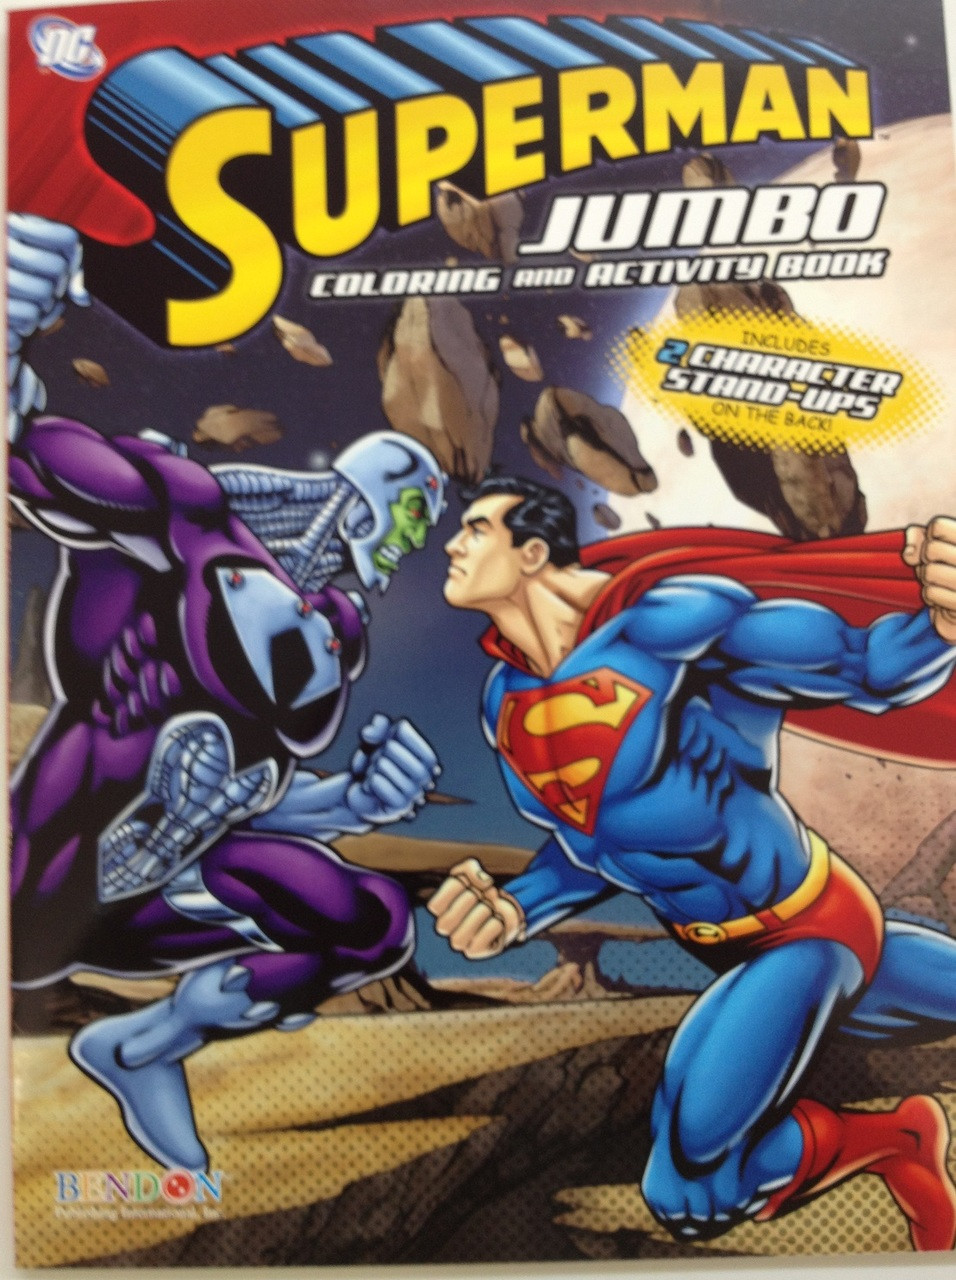 Superman Jumbo 64 pg. Coloring and Activity Book - Ultron